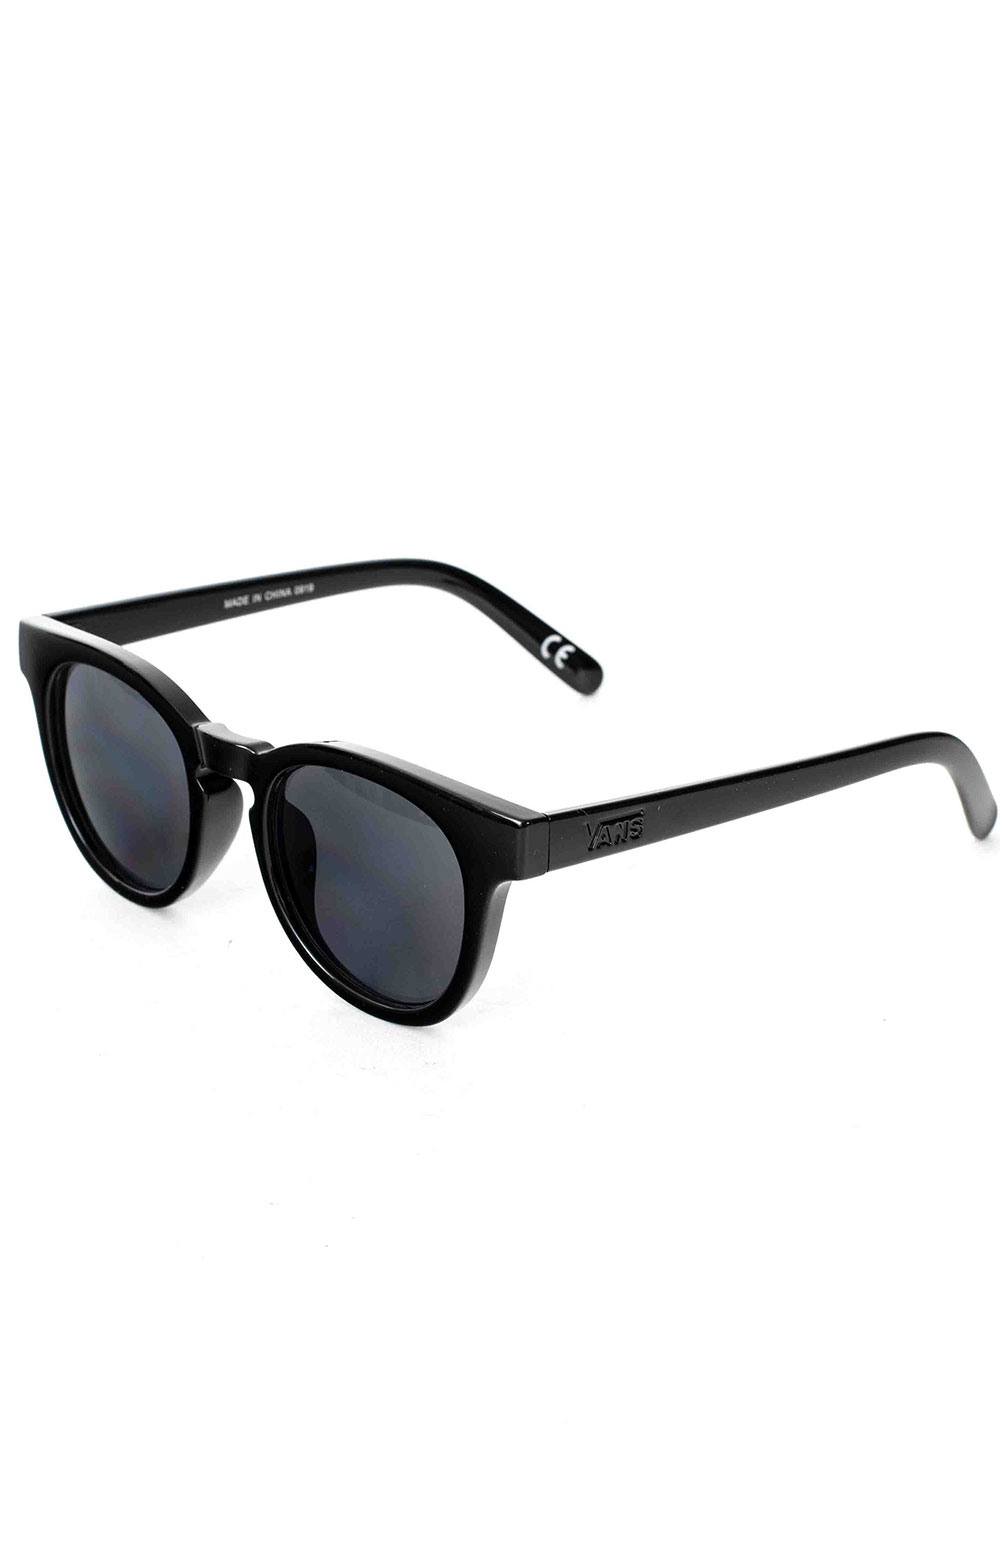 Wellborn II Shades - Black